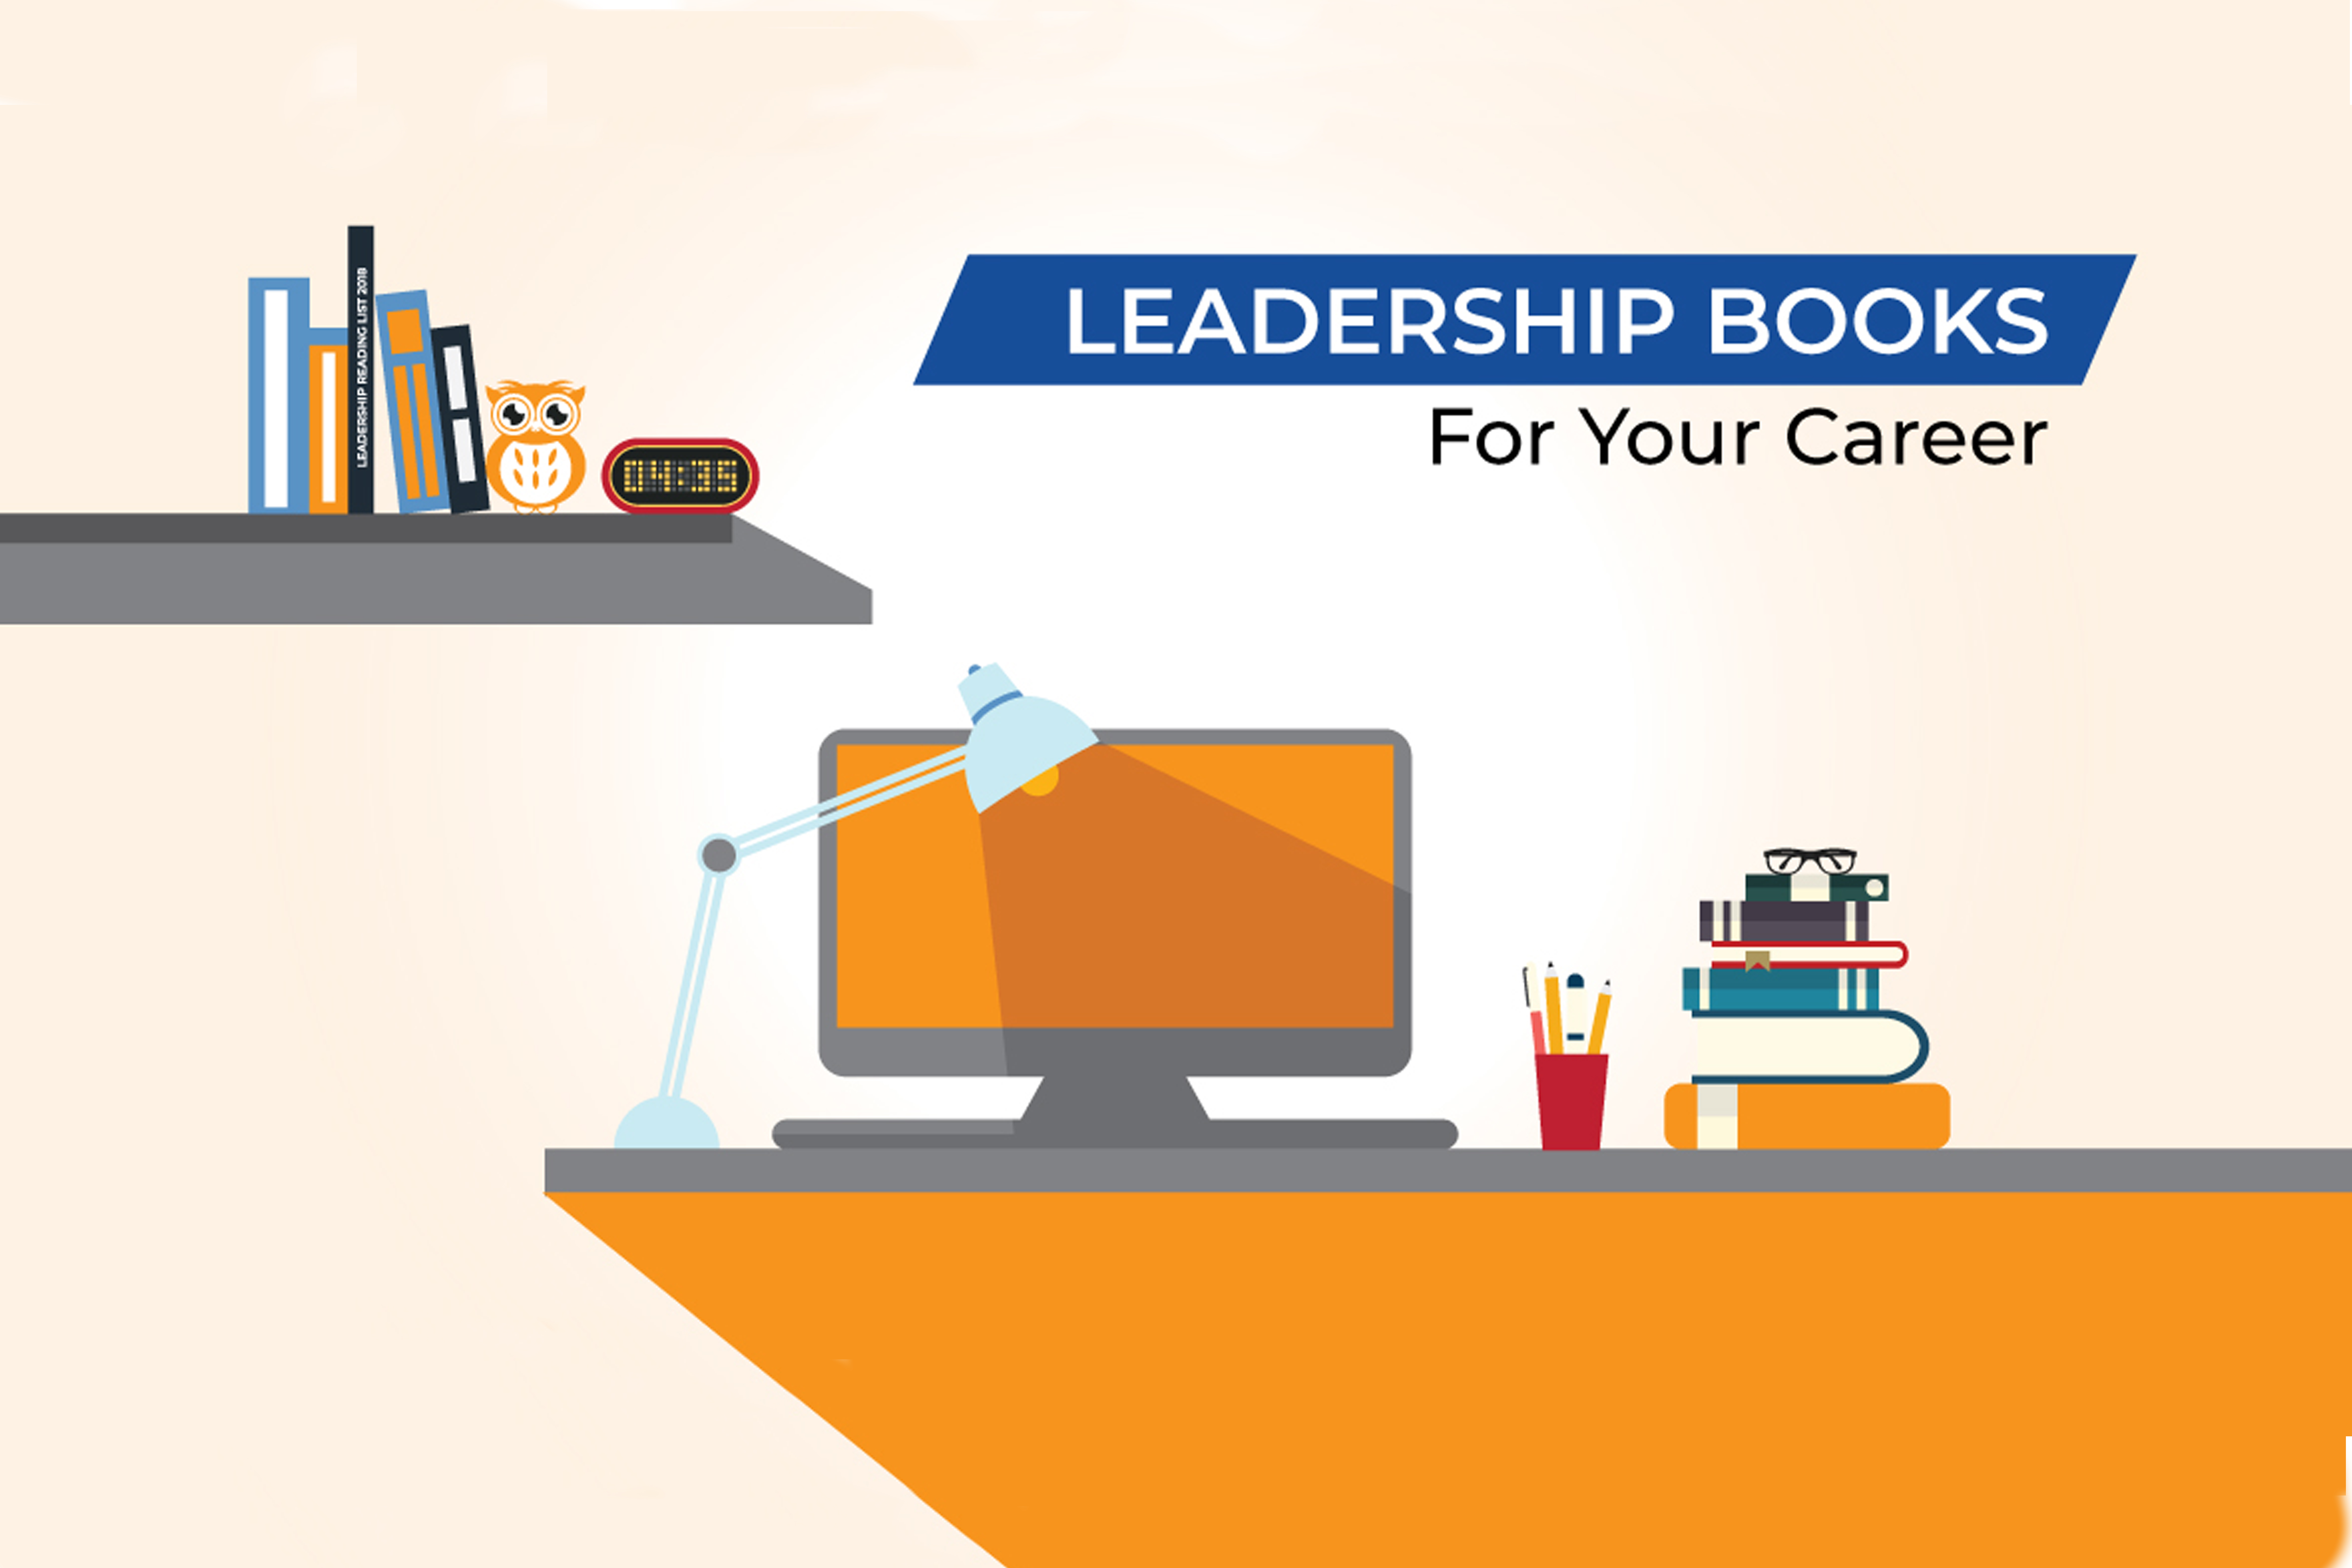 Best Leadership Books 2019 The 5 best leadership books you must read in 2019